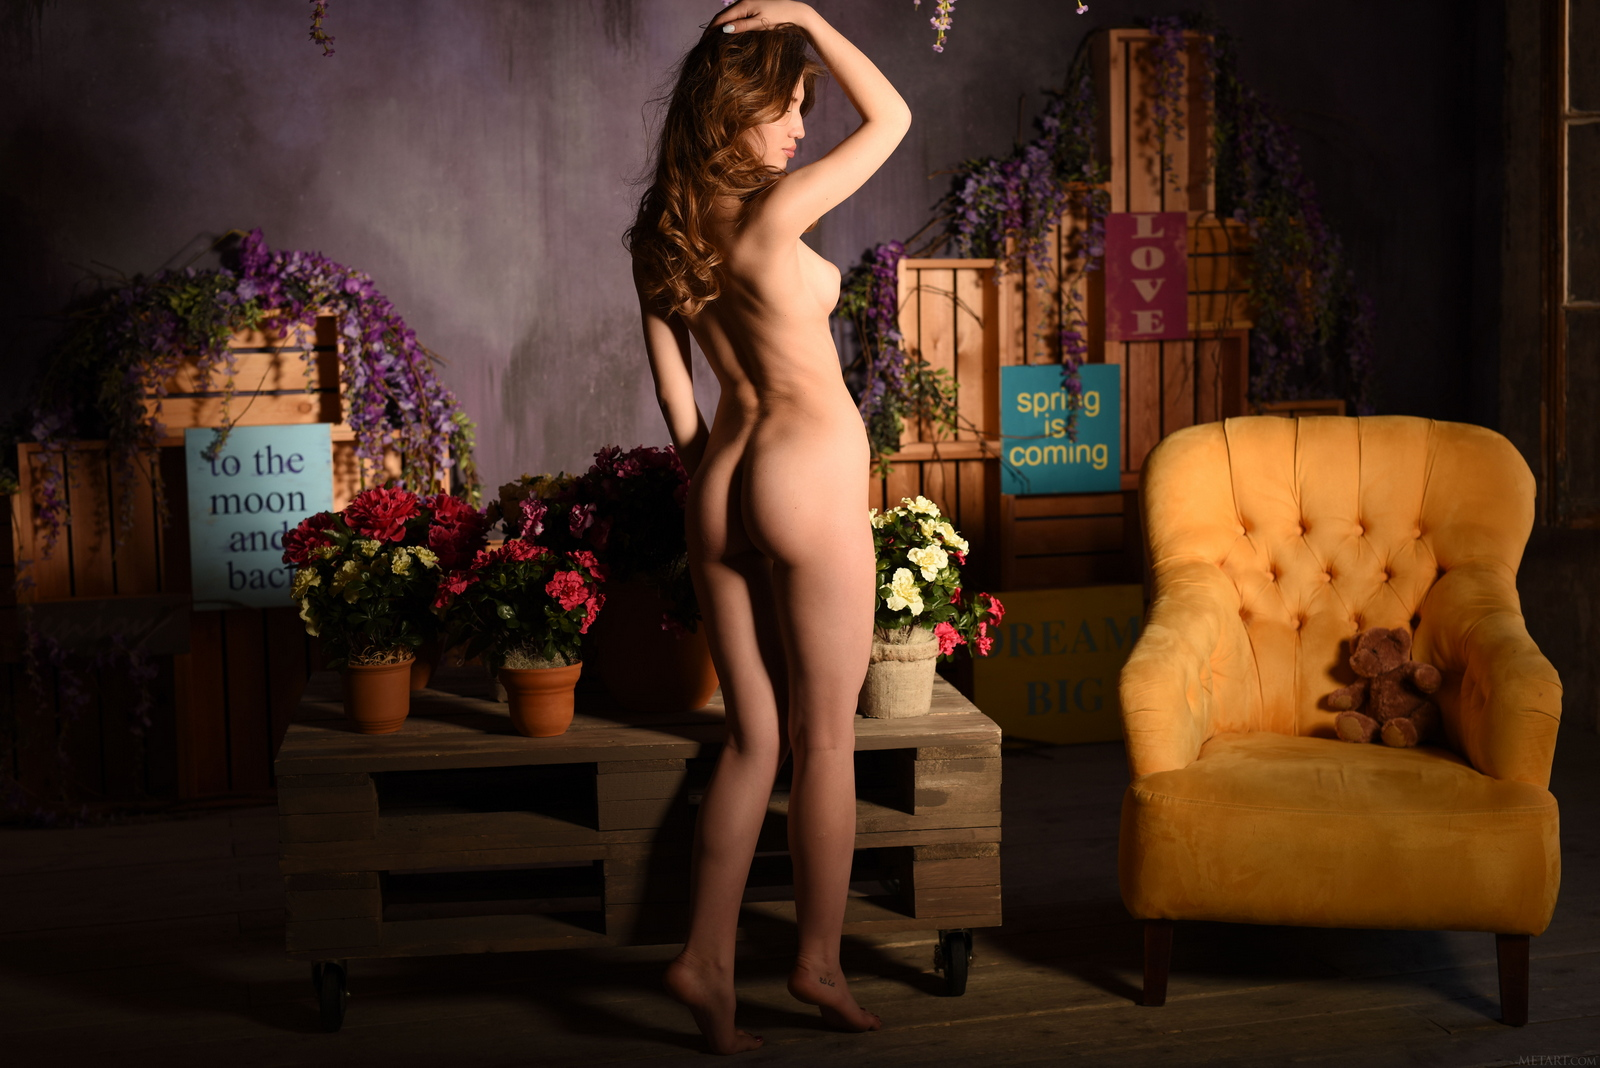 caramel-yellow-armchair-young-nude-pussy-met-art-24